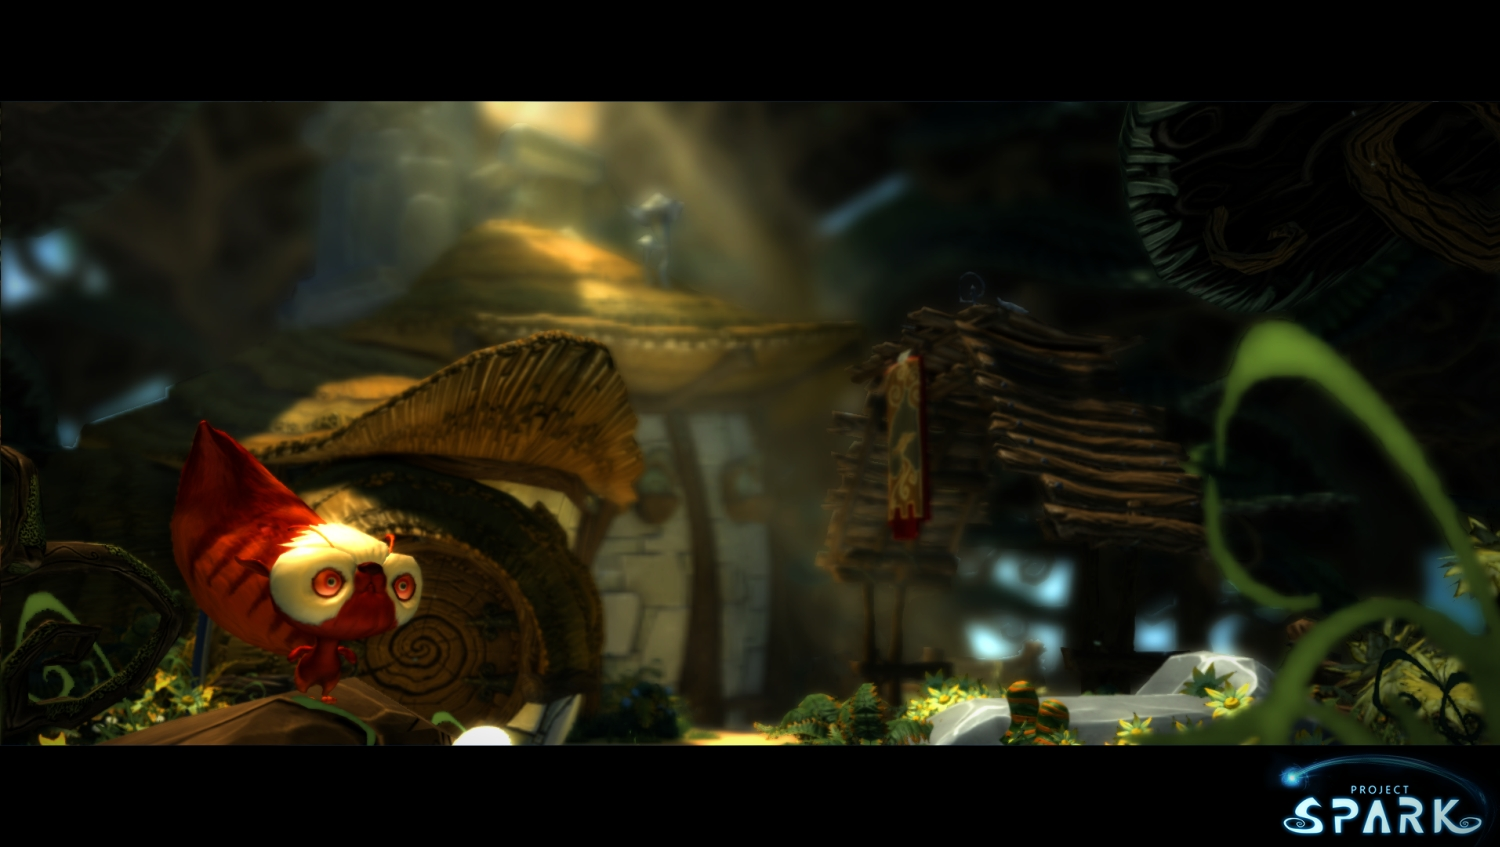 project spark game maker announced for xbox one and